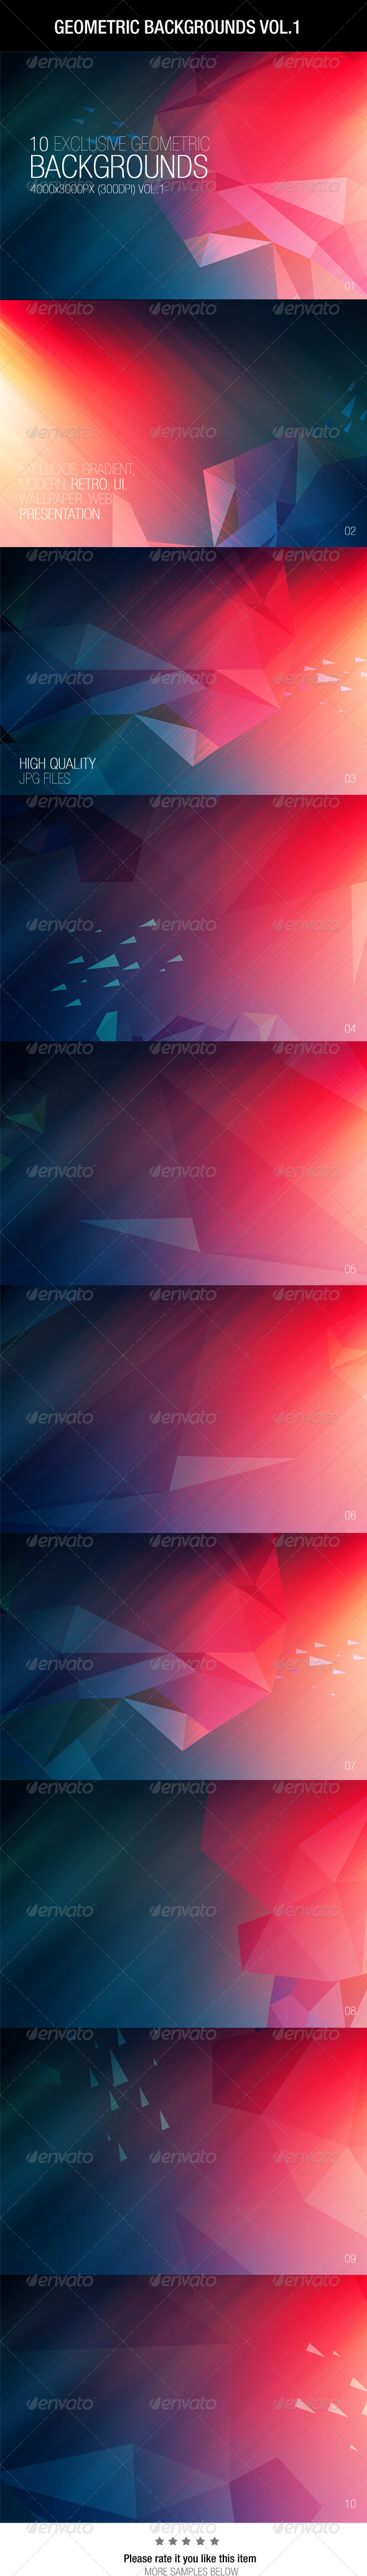 GraphicRiver Geometric Backgrounds Vol.1 6642425